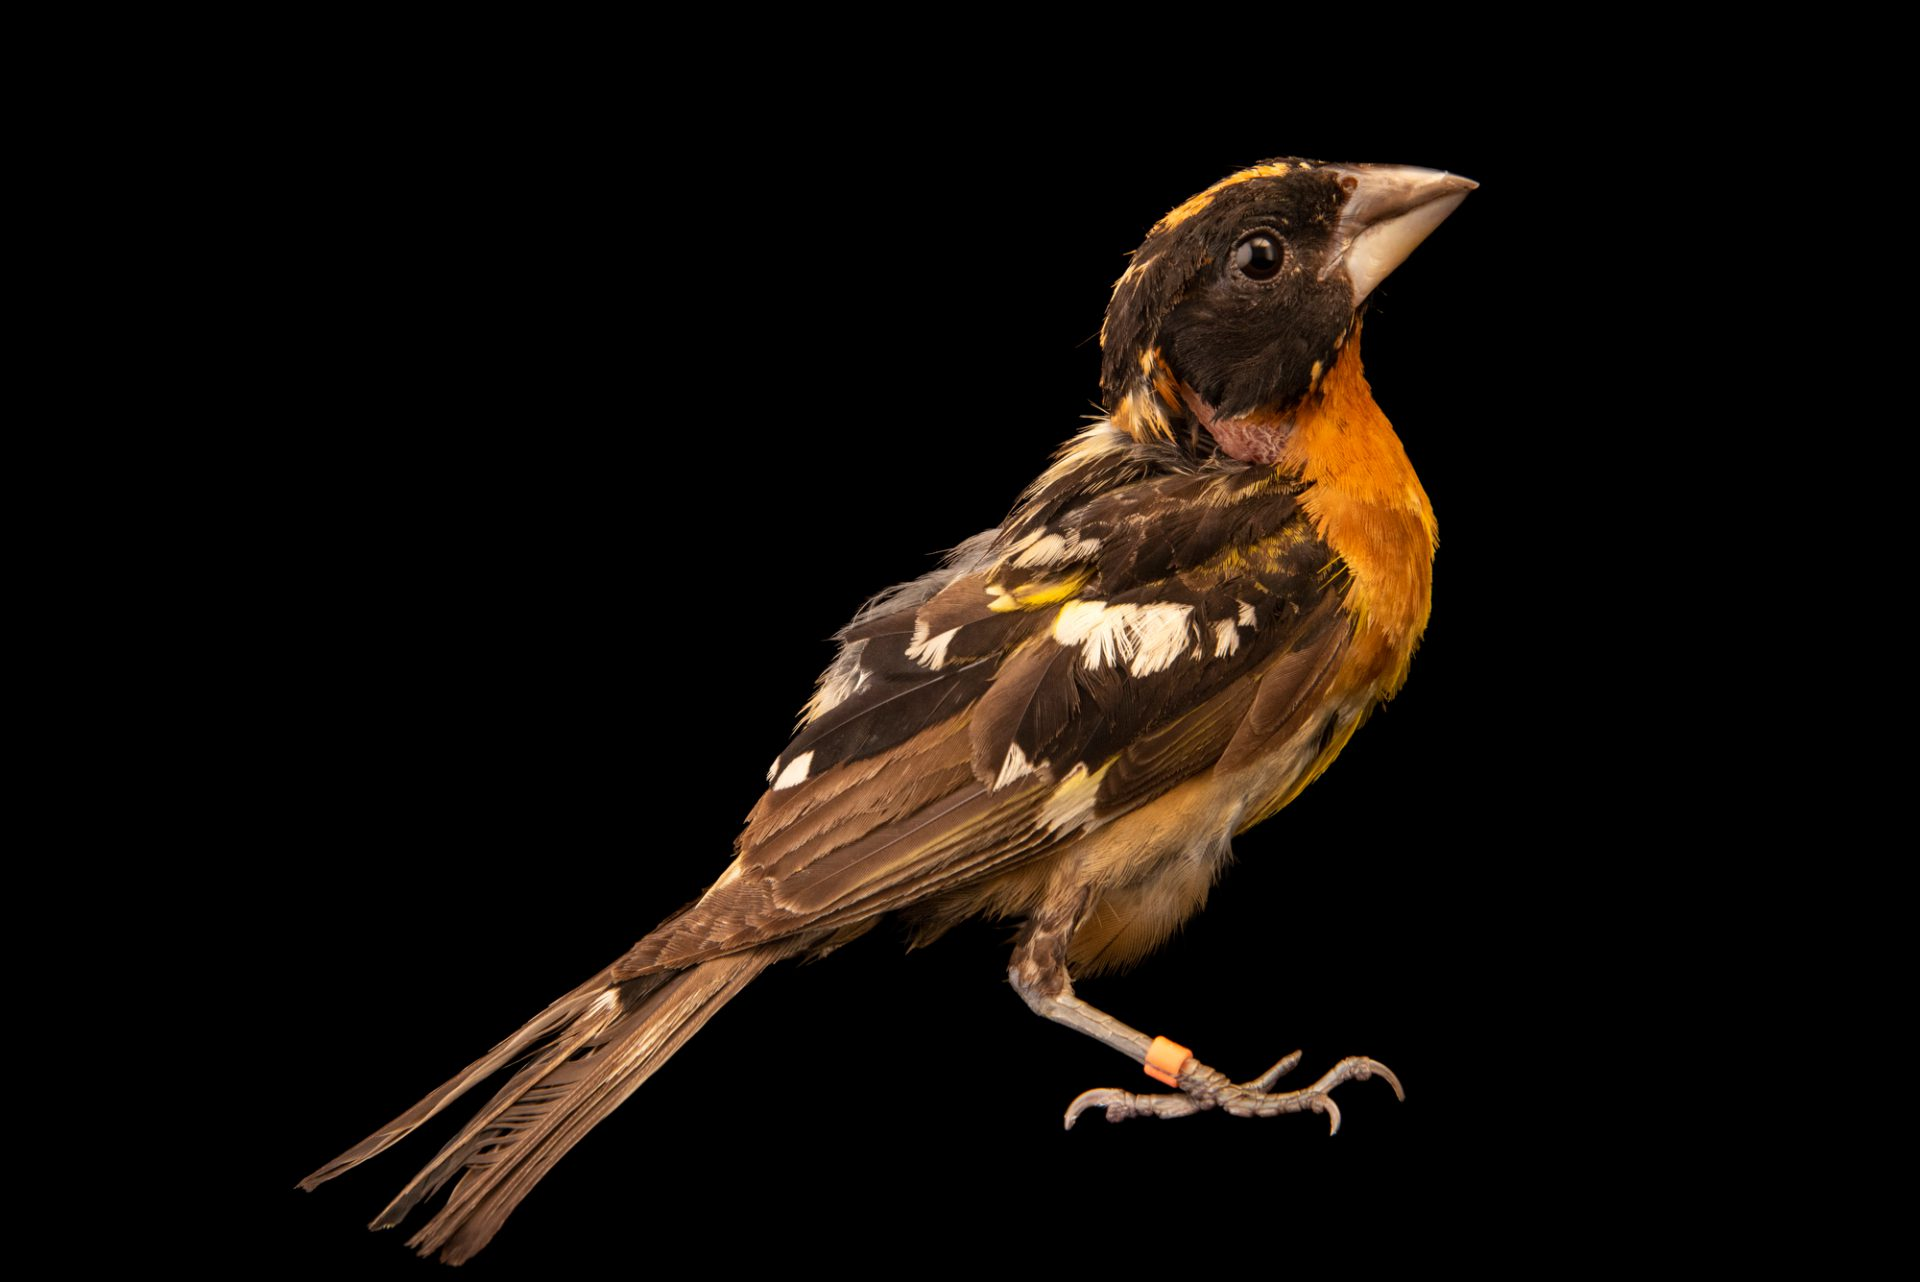 Photo: Black Headed Grosbeak (Pheucticus melanocephalus) at the Wildlife Care Association